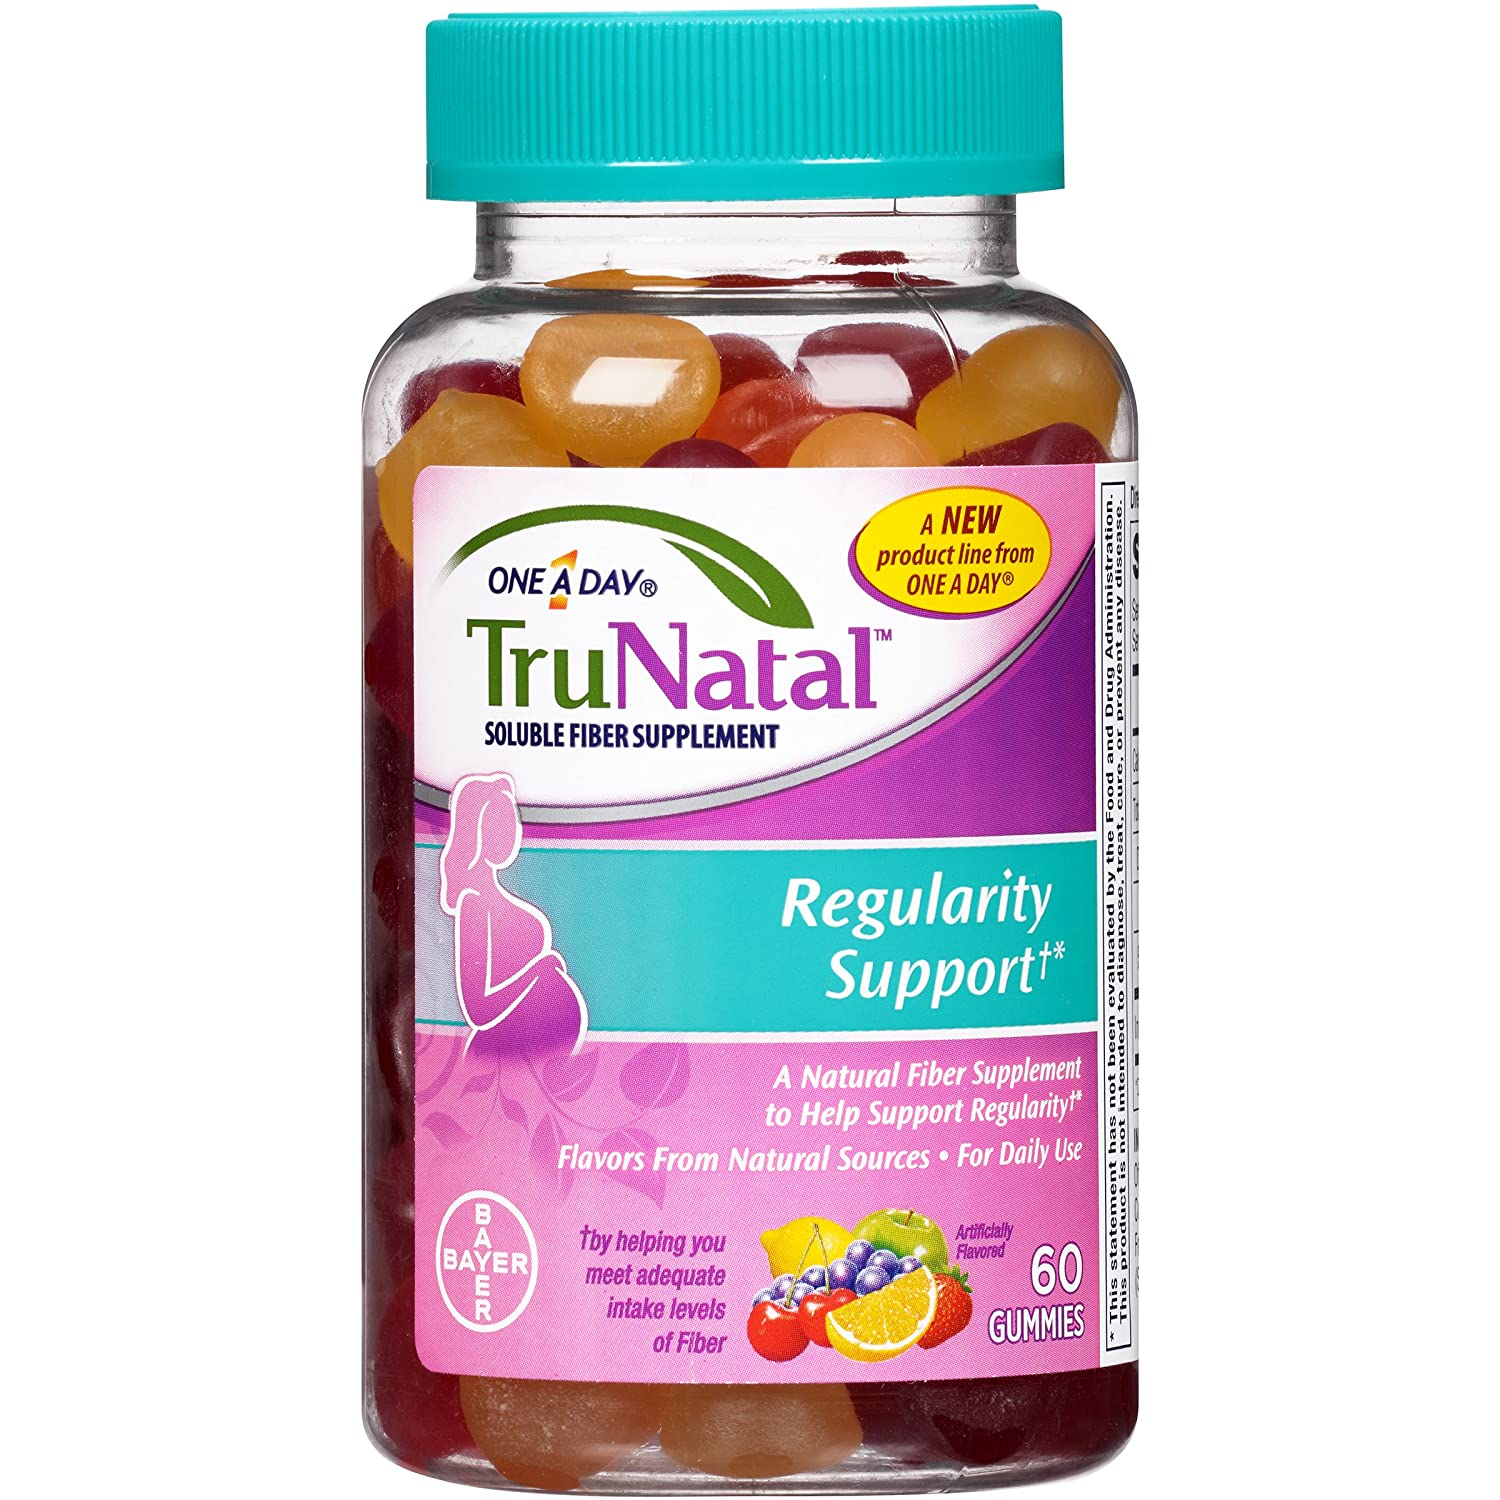 Amazon.com: TruNatal Regularity Support Supplement, 60 Count: Health & Personal Care